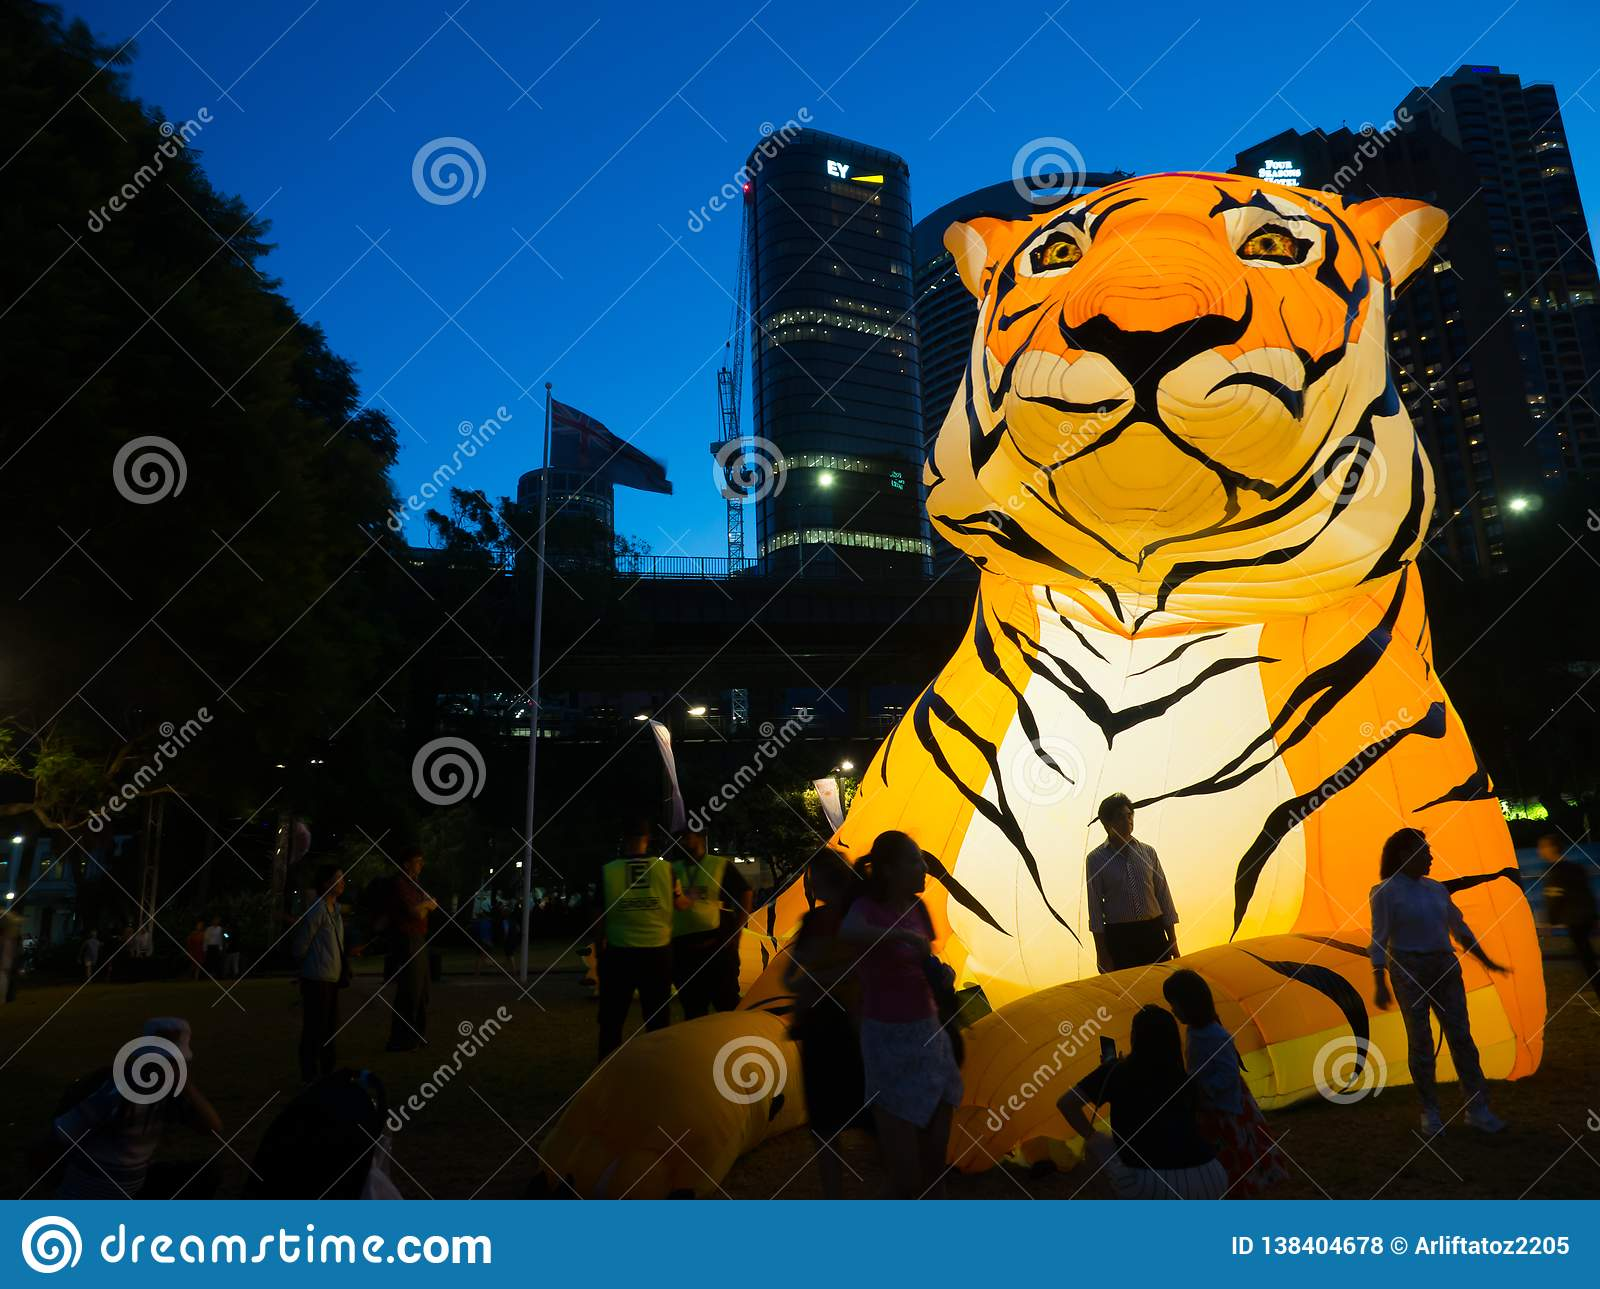 Lunar Lantern `The Tiger` is zodiac symbol of Tiger will be illuminated from dusk at Circular Quay by Artist Kevin Bathman.